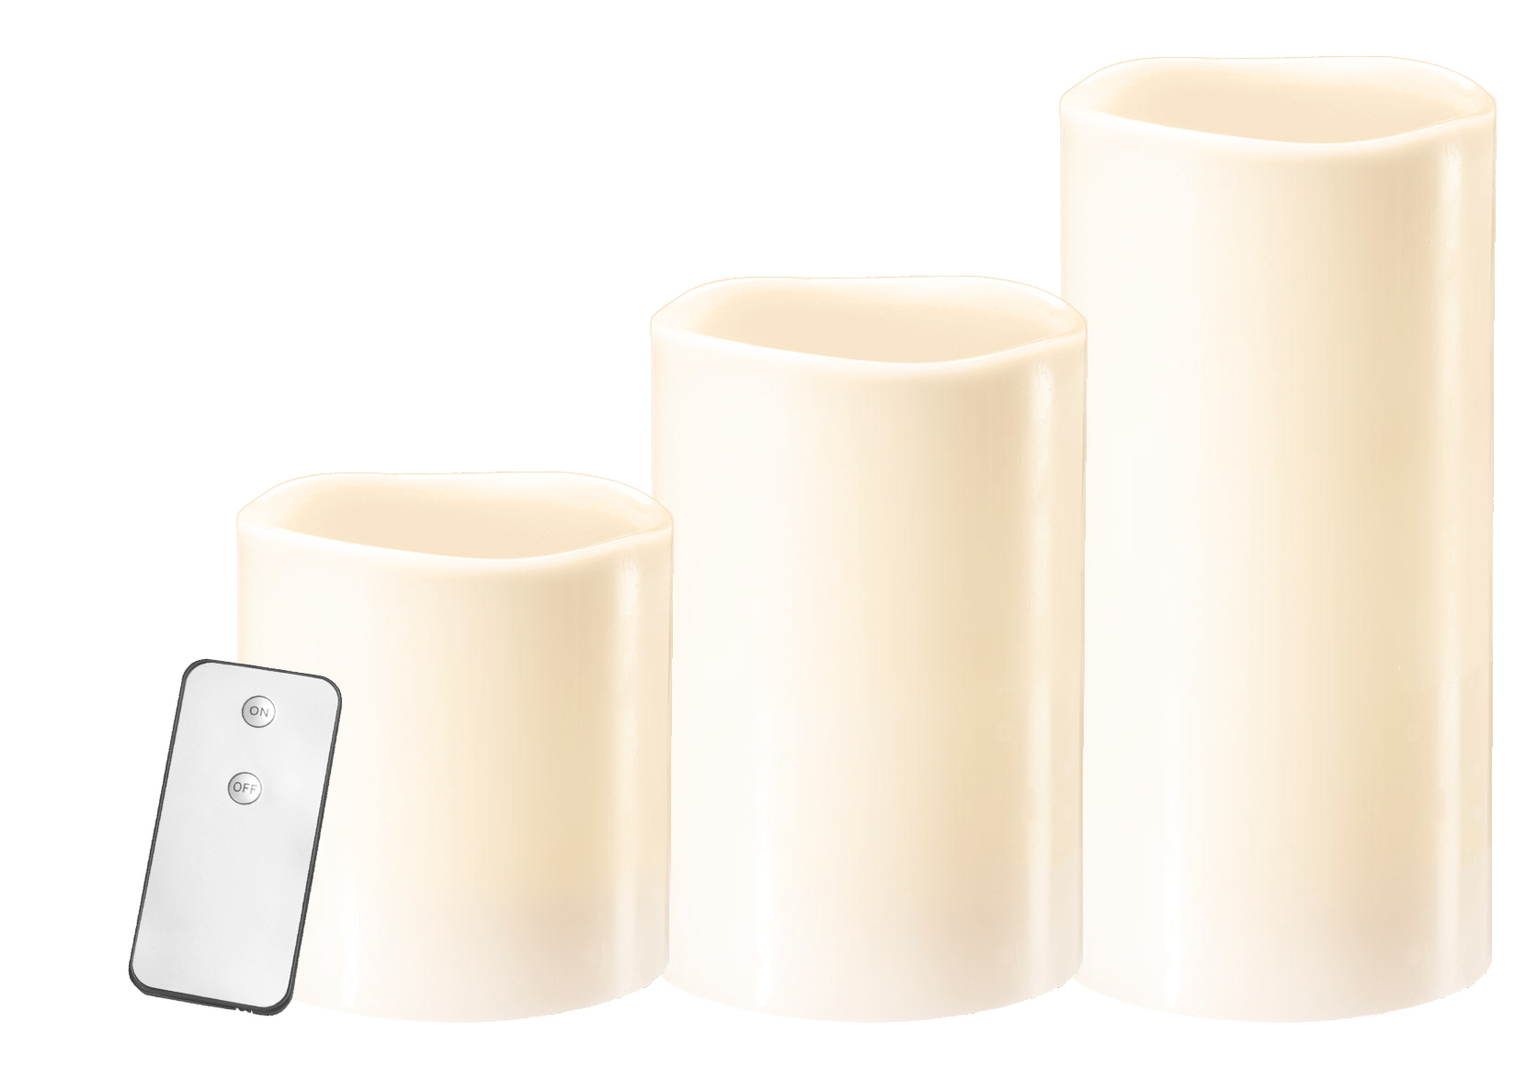 A set of 3 wax candles with remote control